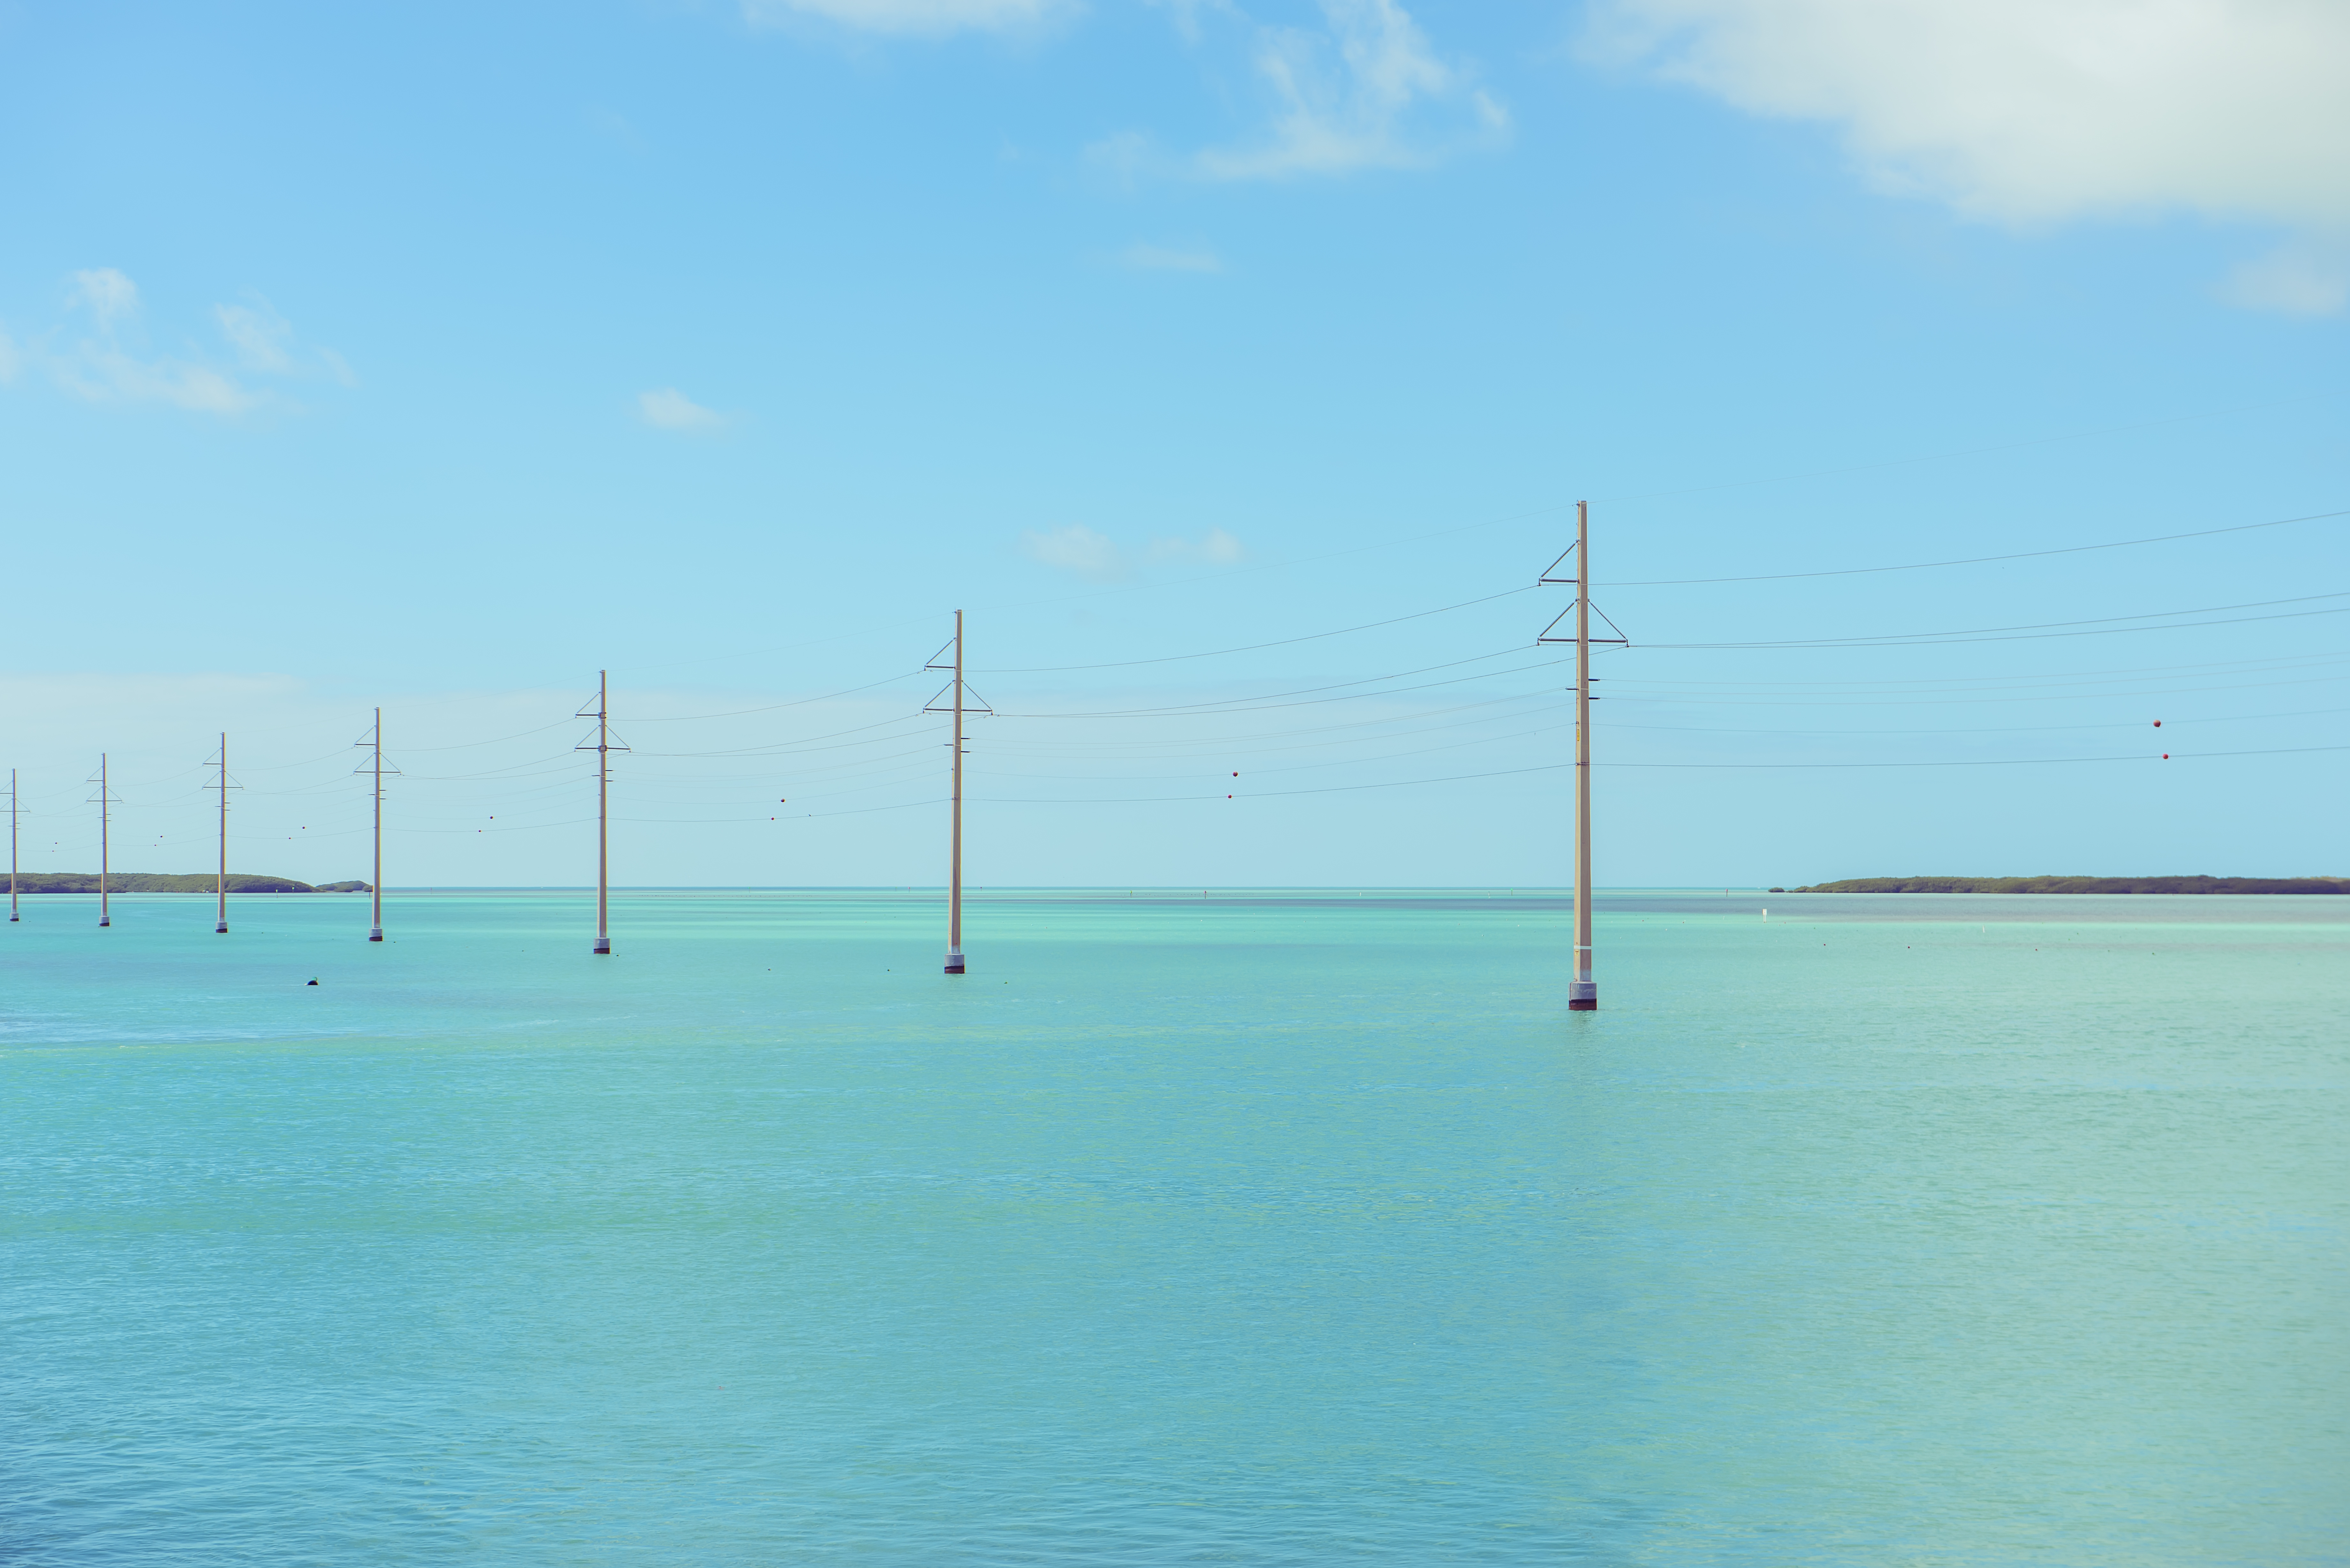 Electric posts in the emerald bay water. Beautiful view of the ocean bay. Florida. USA